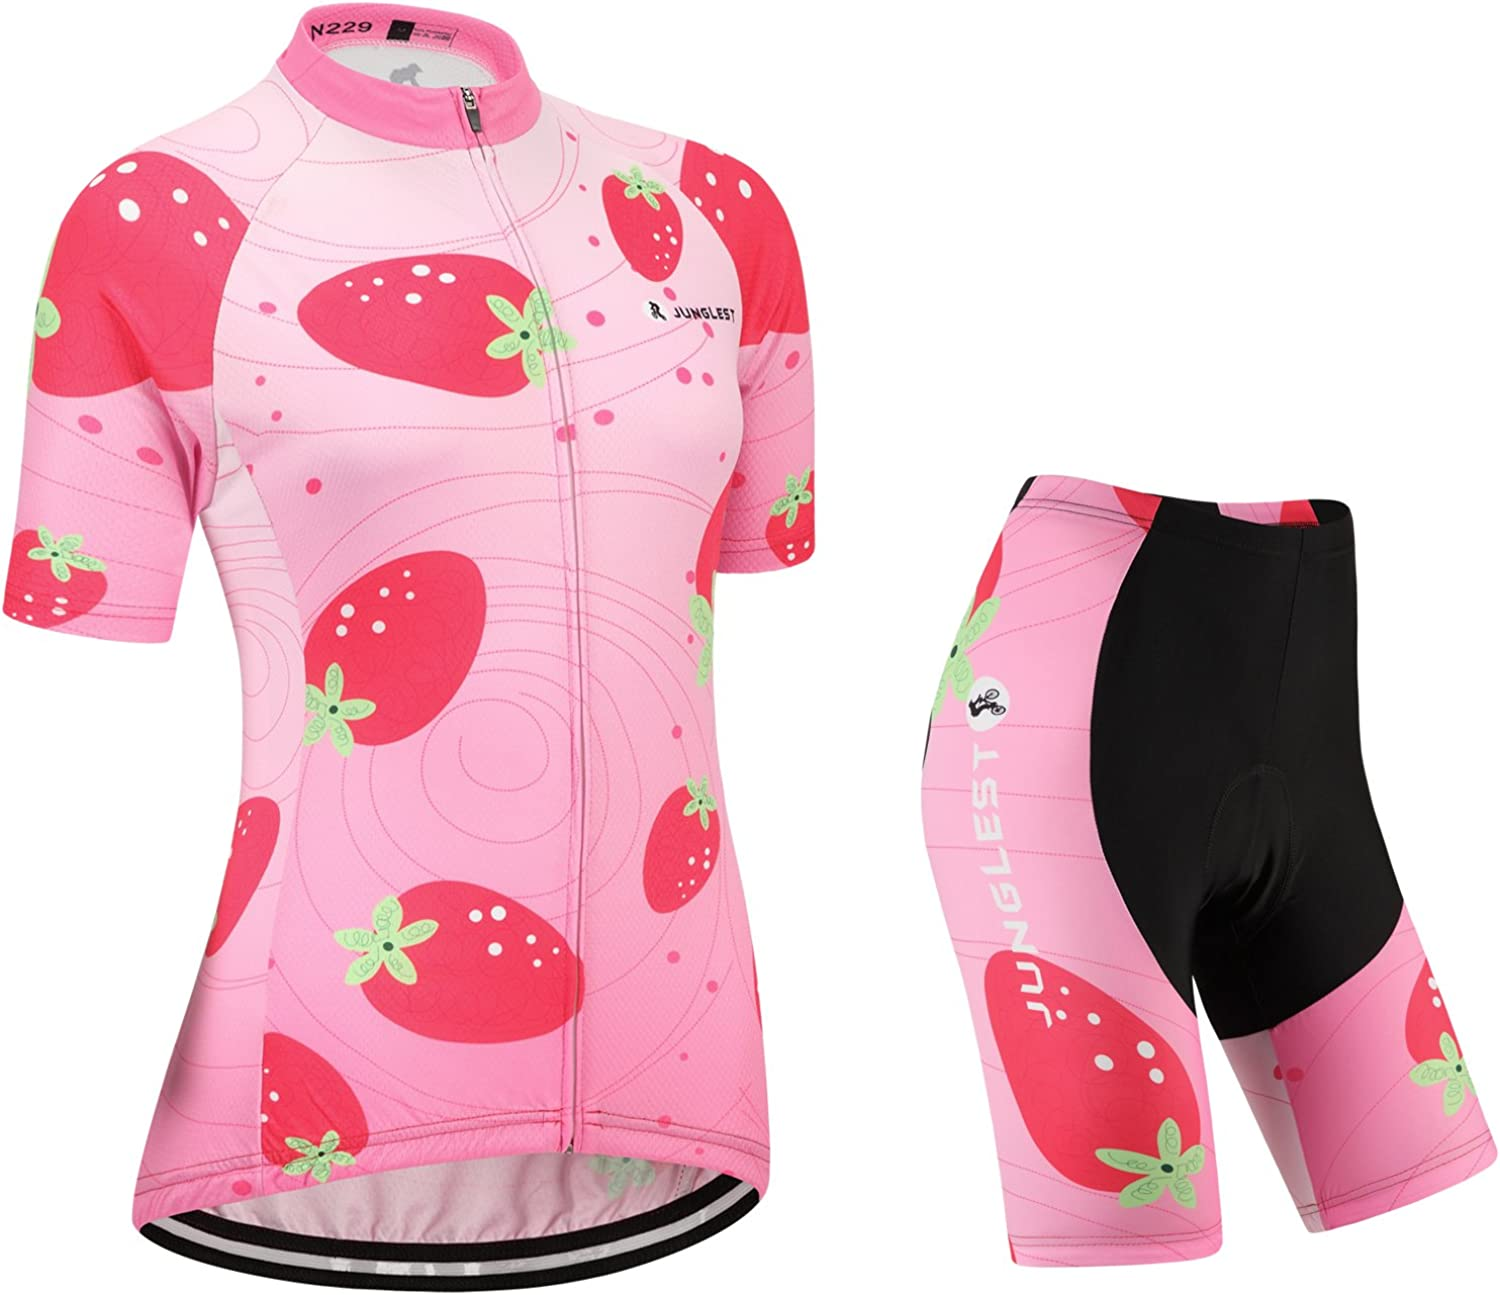 Cycling jersey Set, Maillot de Cyclisme Women Femme Short sleeve Manches Courtes(S5XL,option bib Cuissard,3D pad Coussin) N229